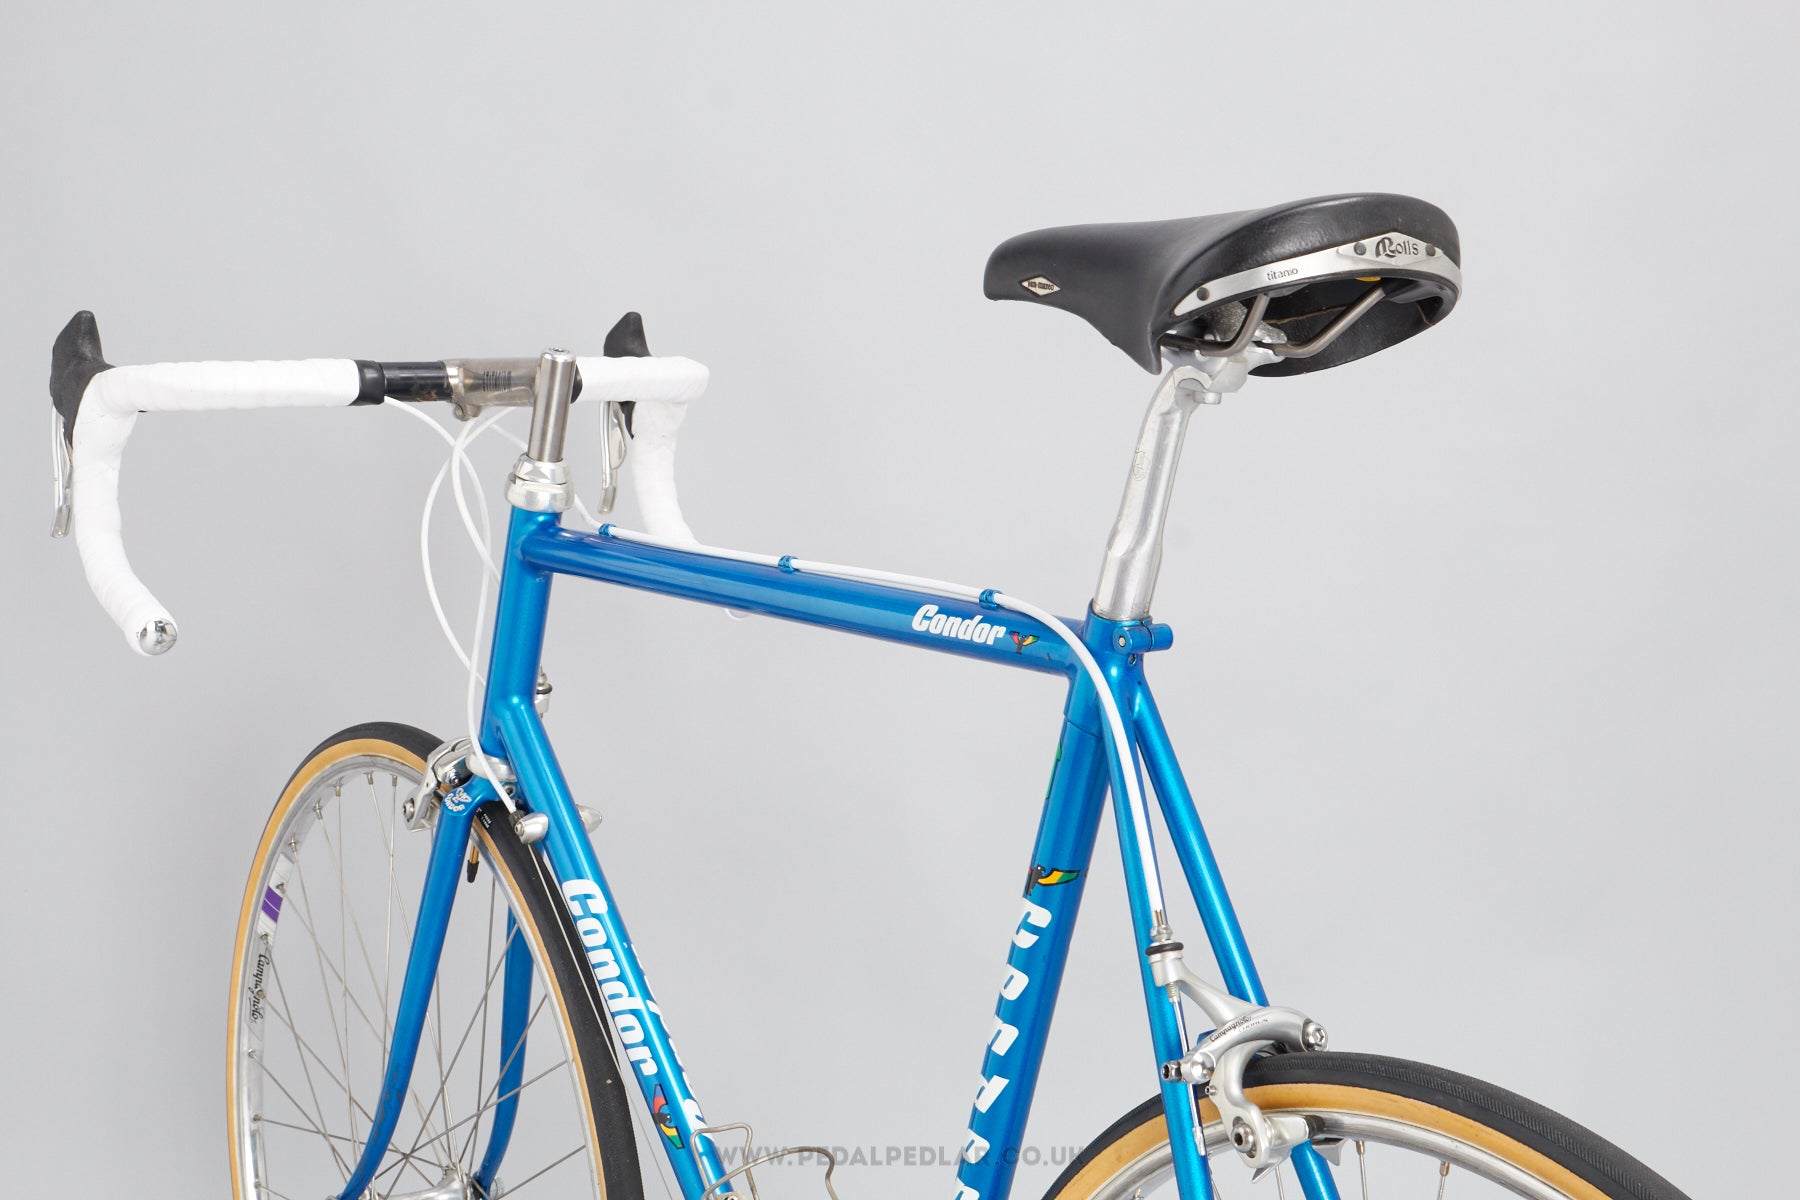 58cm Condor Cycles 1995 Reynolds 853 Vintage Road Racing Bike ...